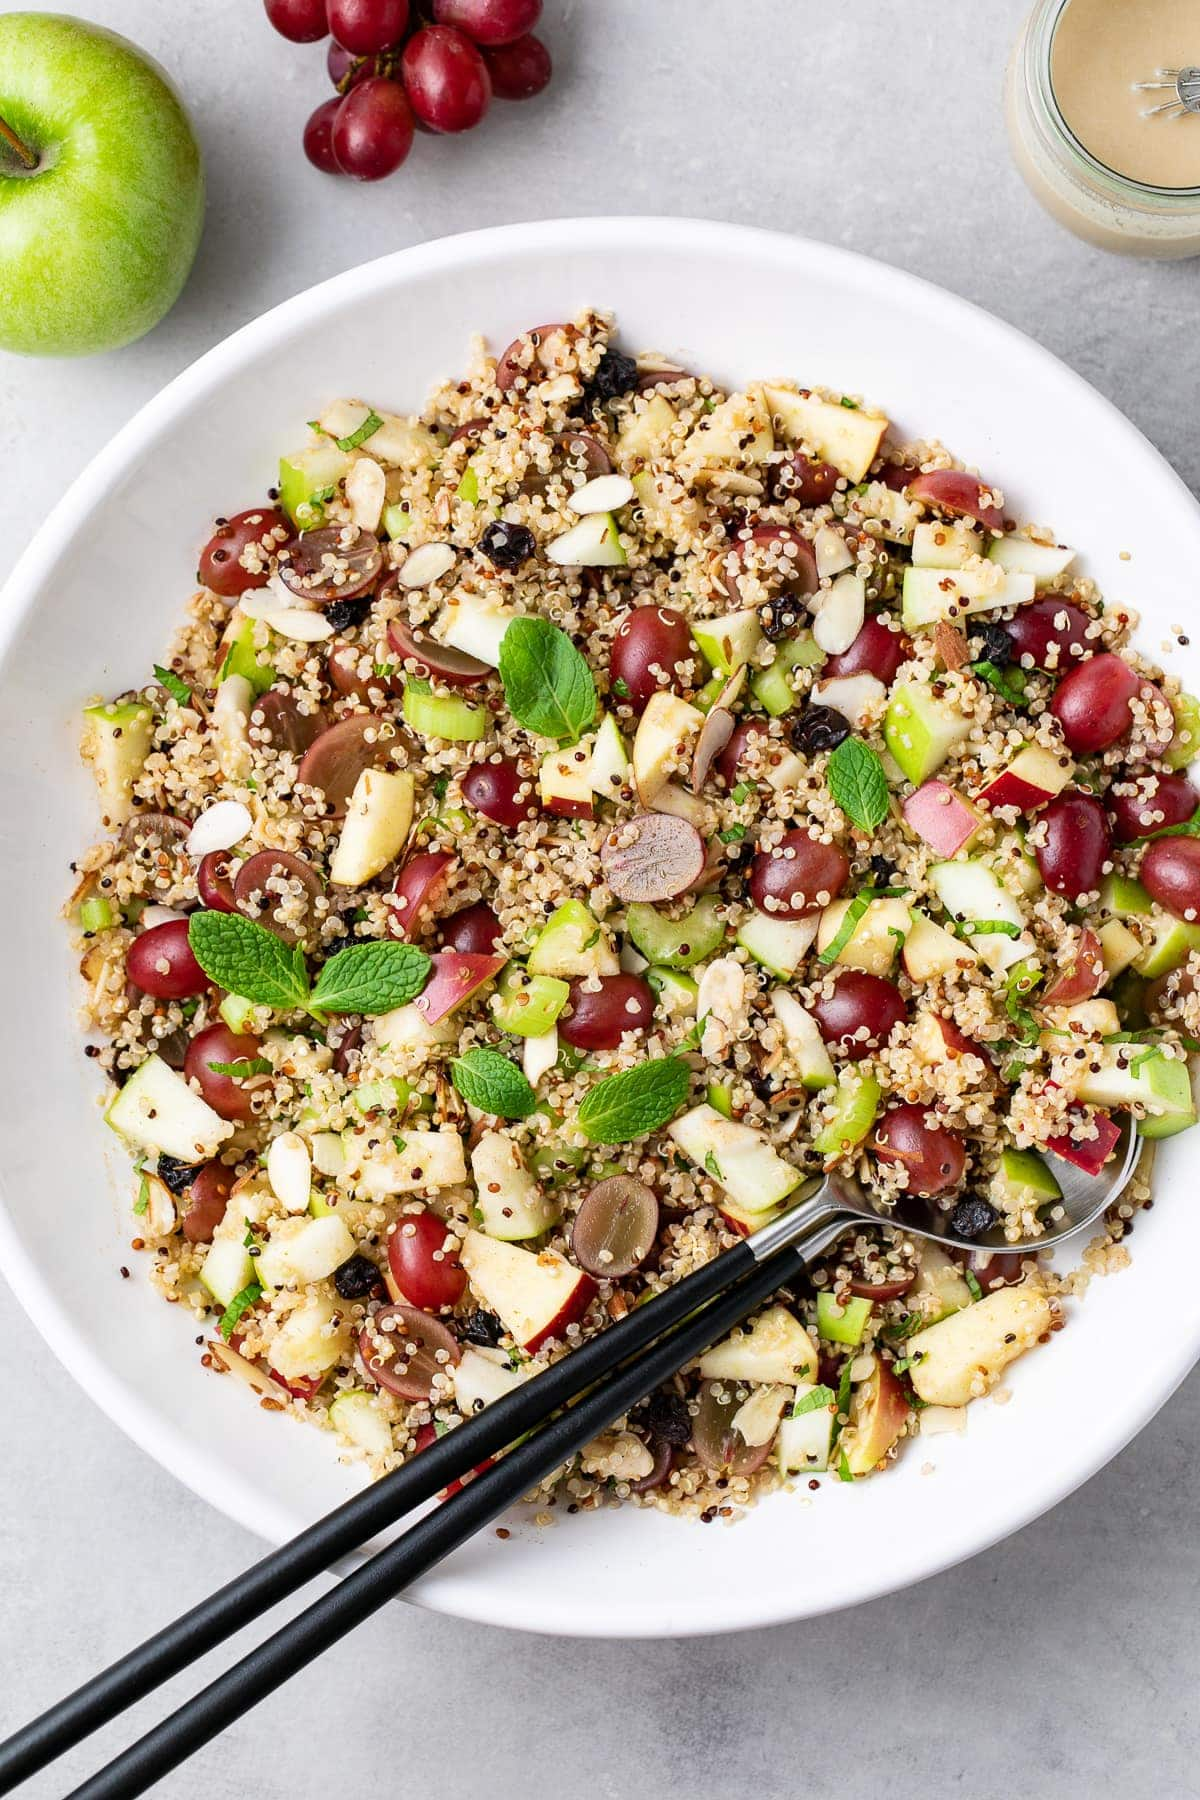 Apple Quinoa Salad Tahini Maple Dressing The Simple Veganista